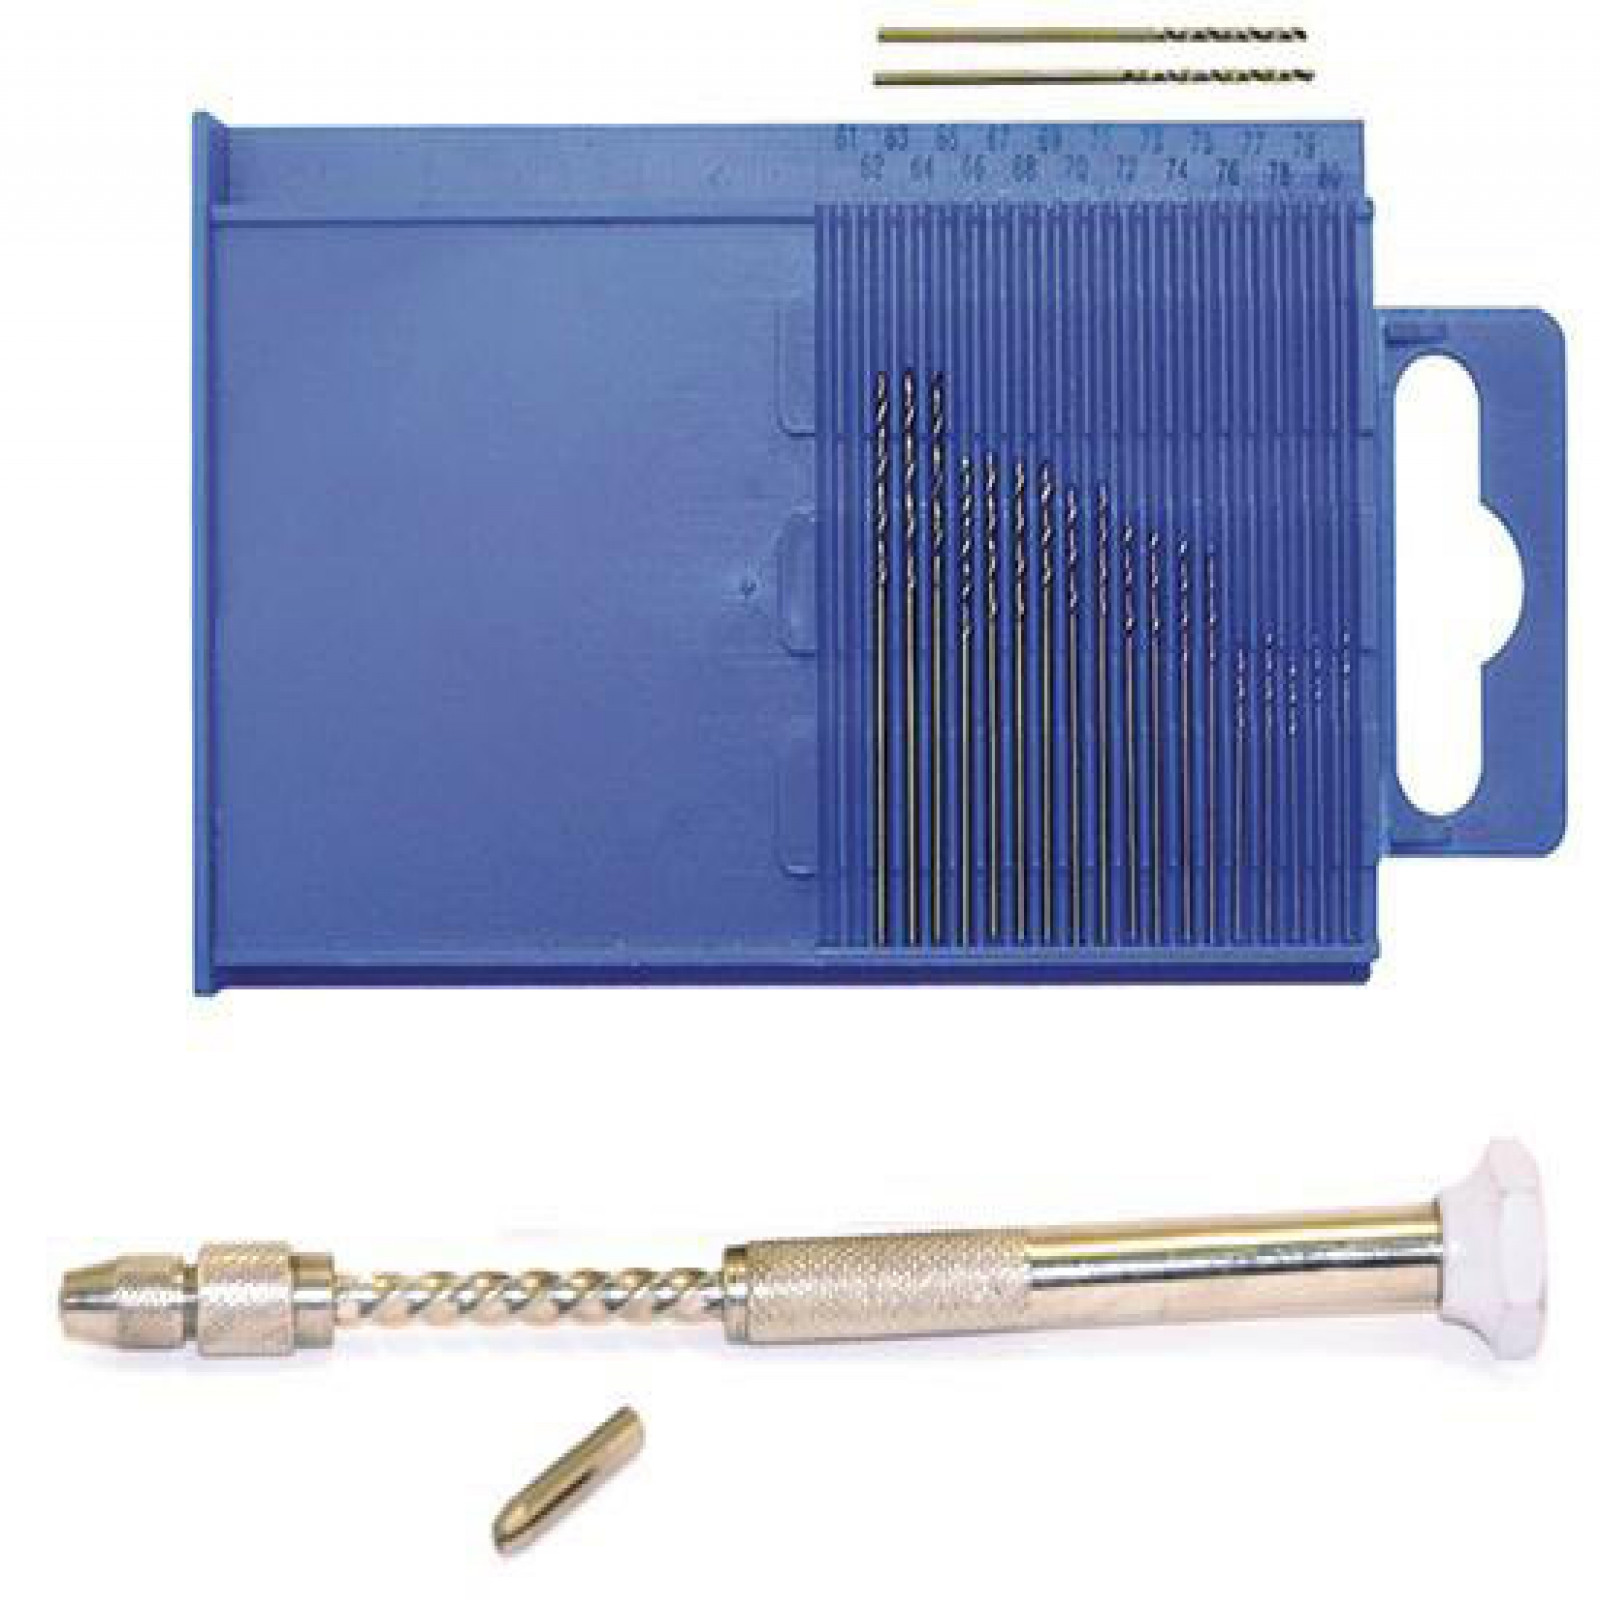 20 PC. MINI-DRILL SET WITH SPIRAL PUSH DRILL